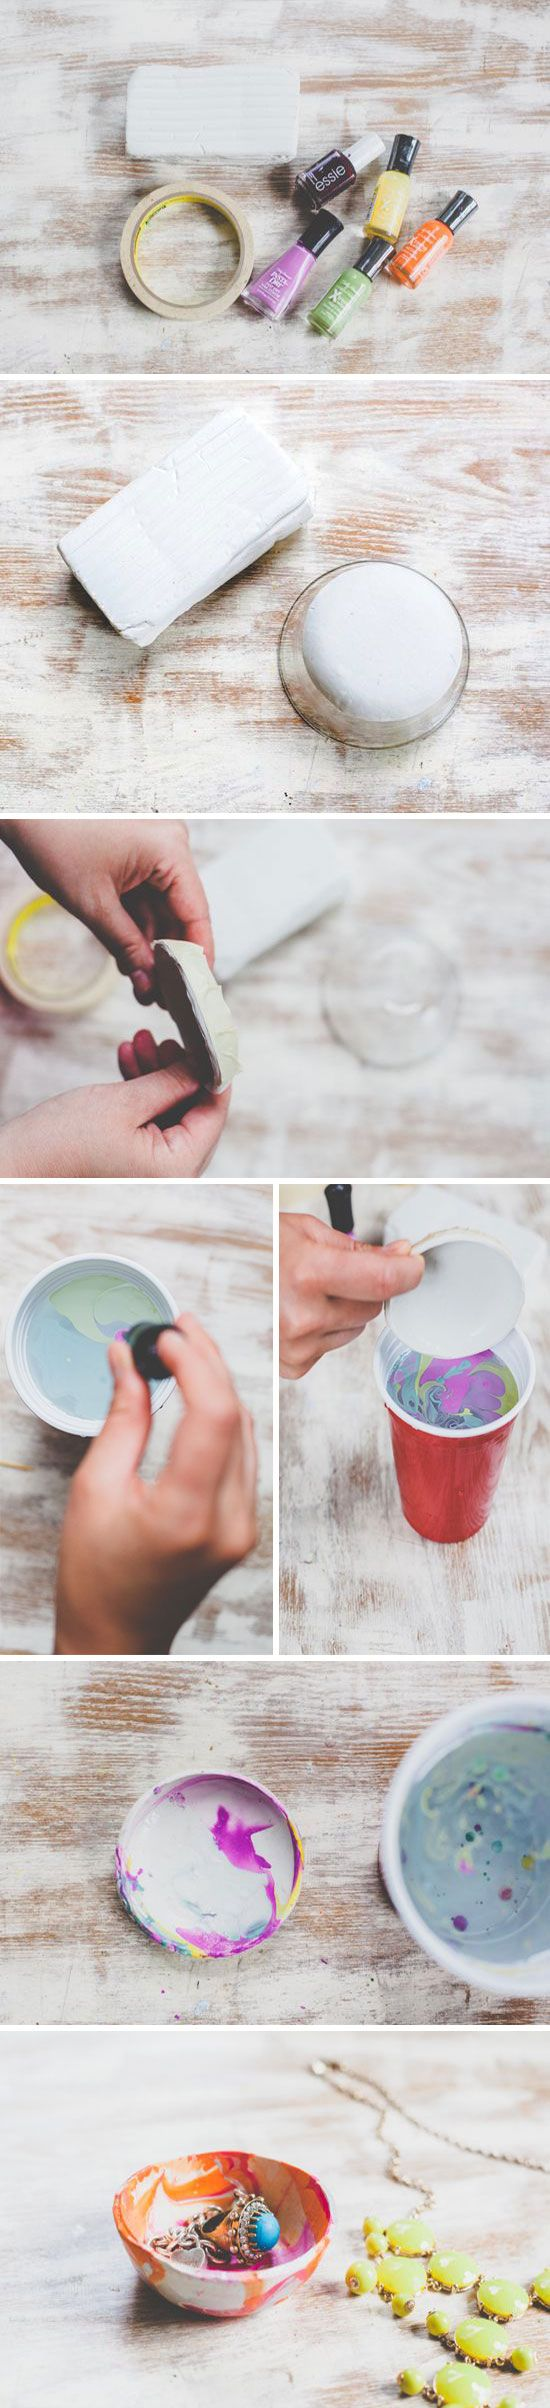 Make This: Mini Marbled Decorative Bowls for Mother's Day marbled_mini_bowls_tutorial – Paper & Stitch